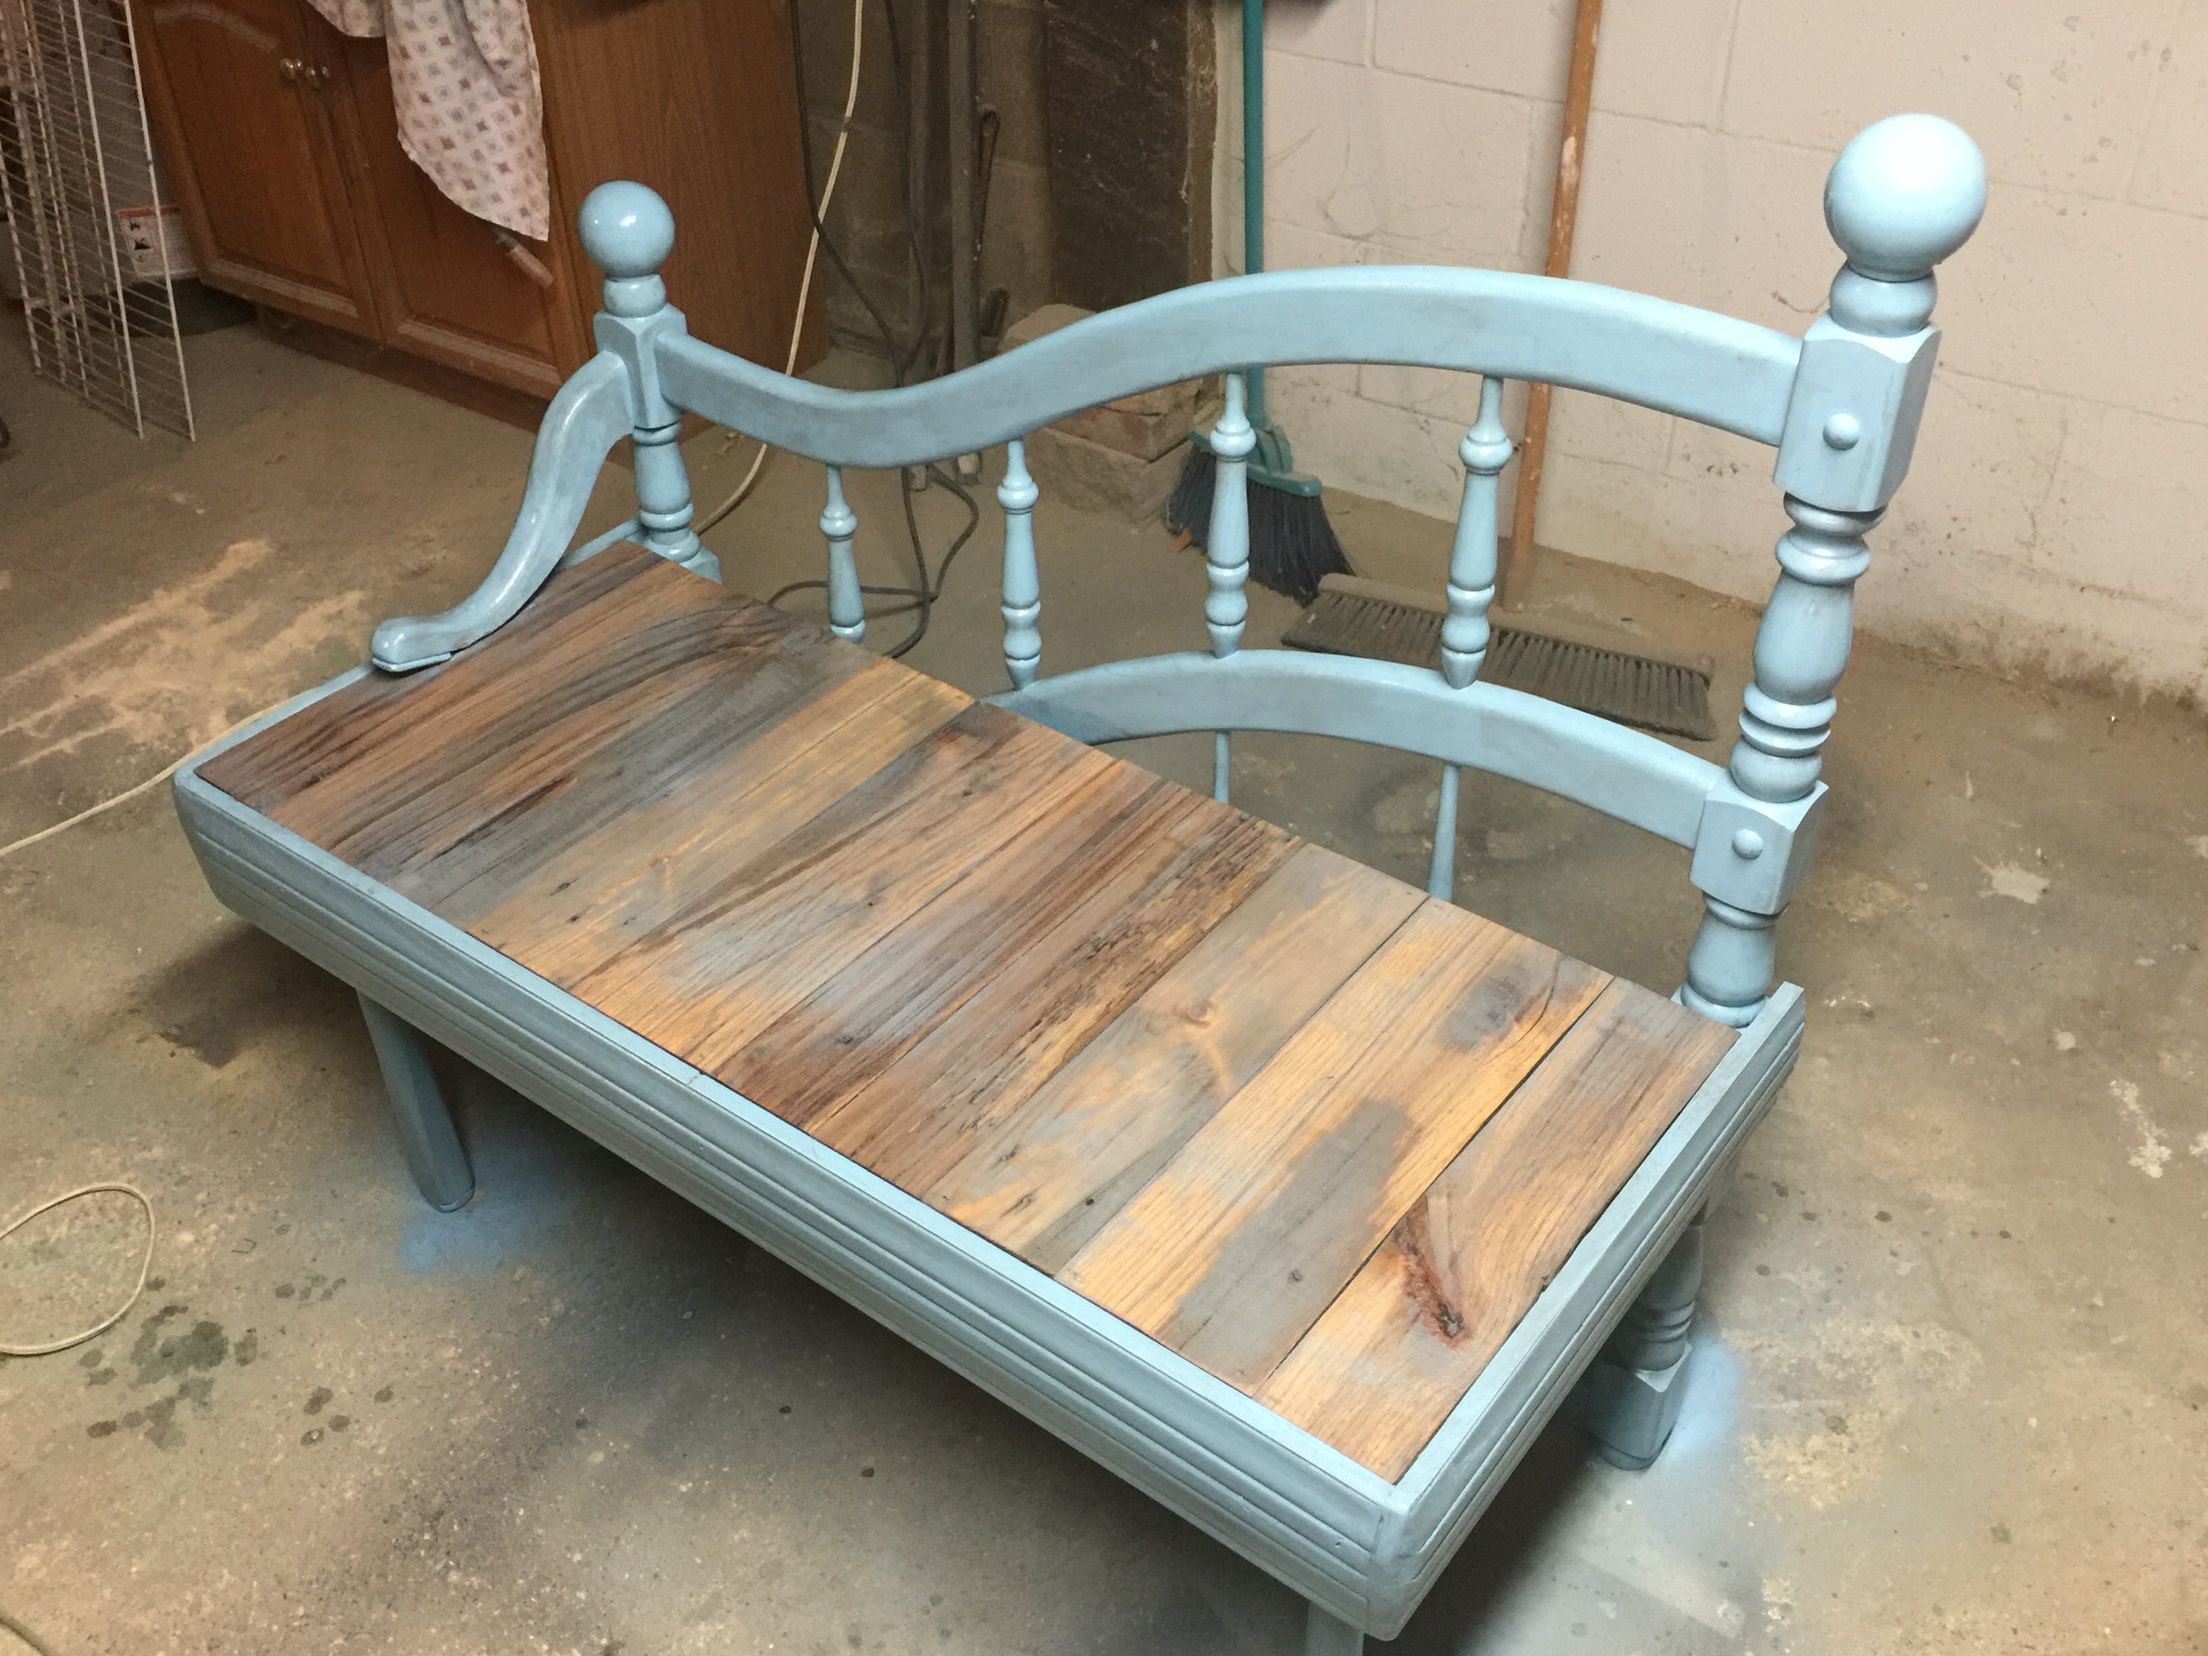 Repurposed Day bed - Small Corner bench